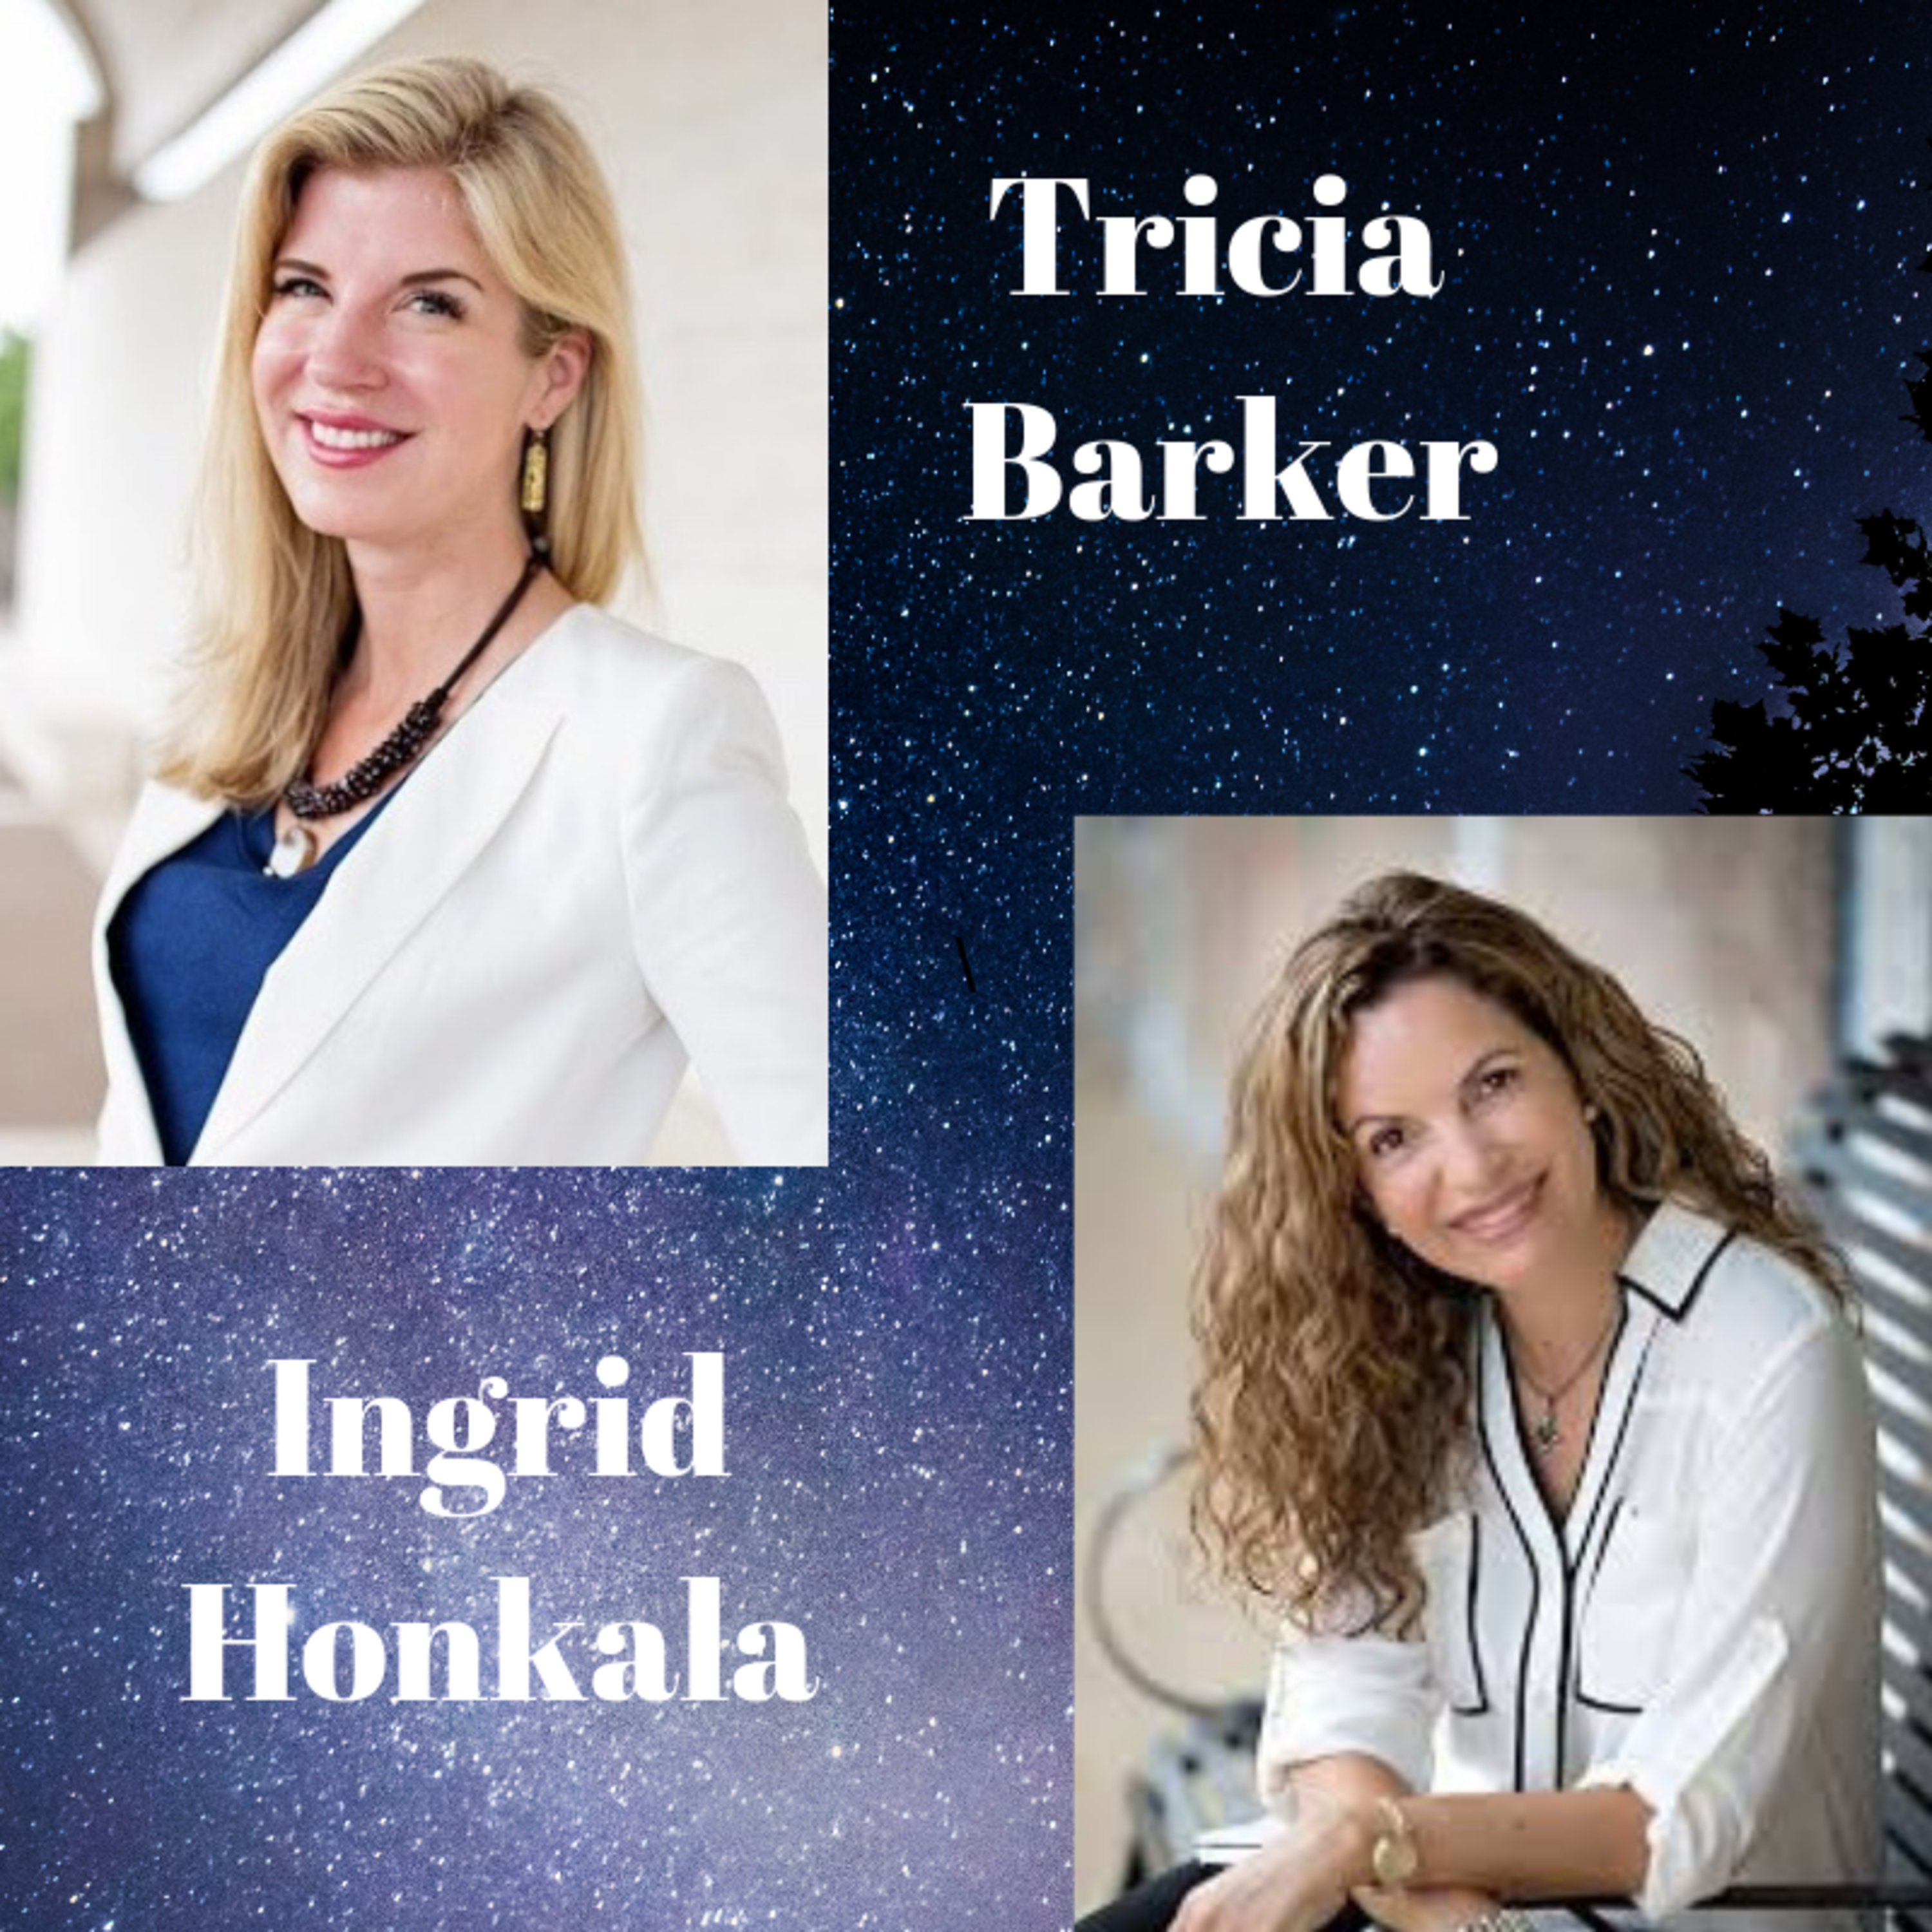 S2 Ep. 13 Ingrid Honkala --Tricia Barker's Conversations With Near-Death Experiencers (Live at the IANDS Conference 2018)